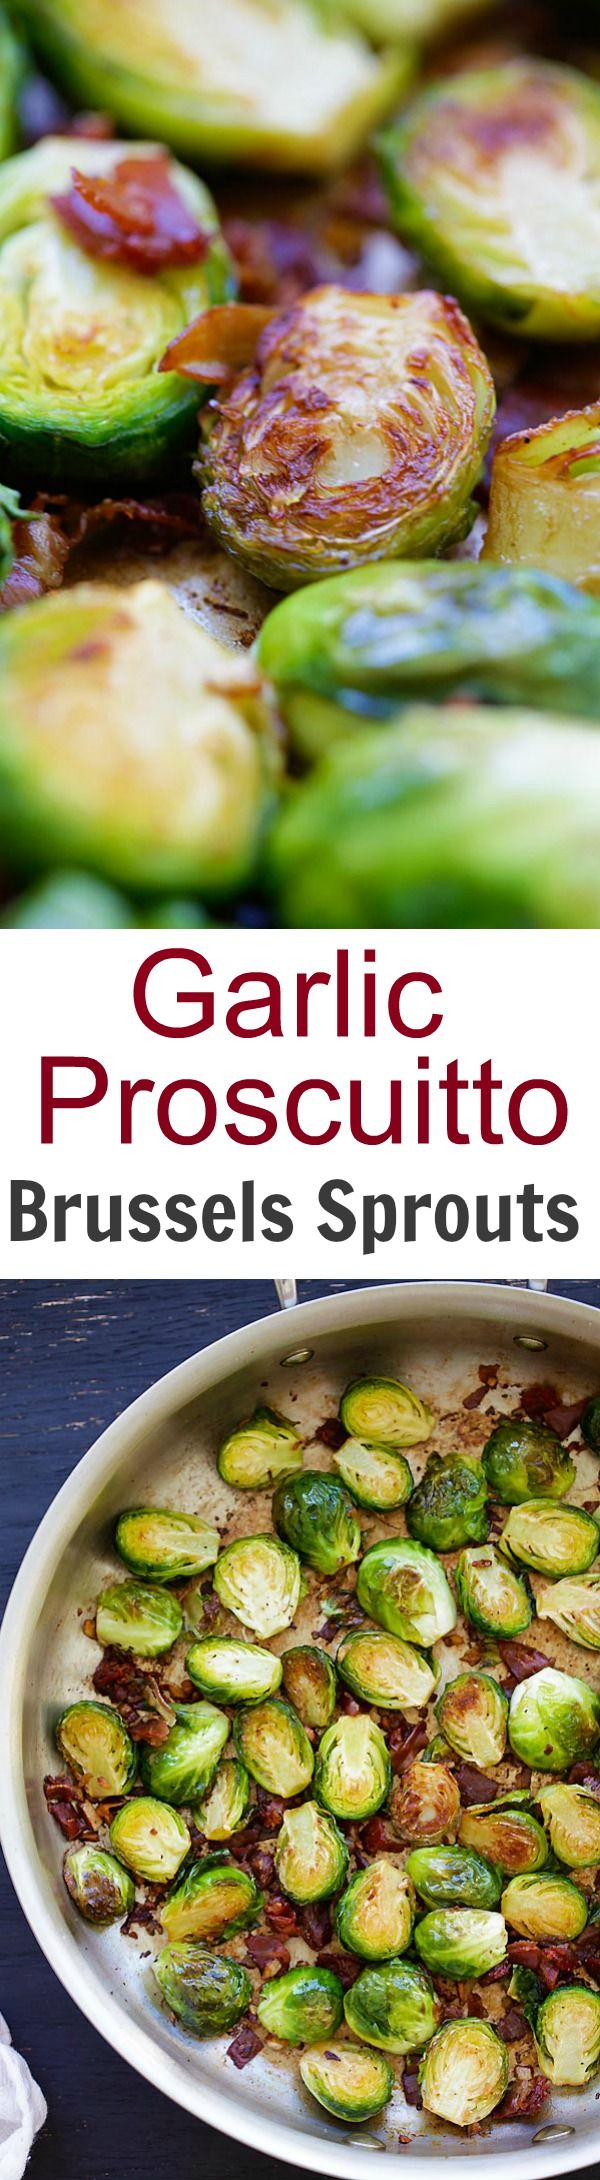 Garlic-Prosciutto Brussels Sprouts – roasted brussels sprouts with smoky prosciutto. Saute on skillet and finish in oven, 20 mins only | rasamalaysia.com